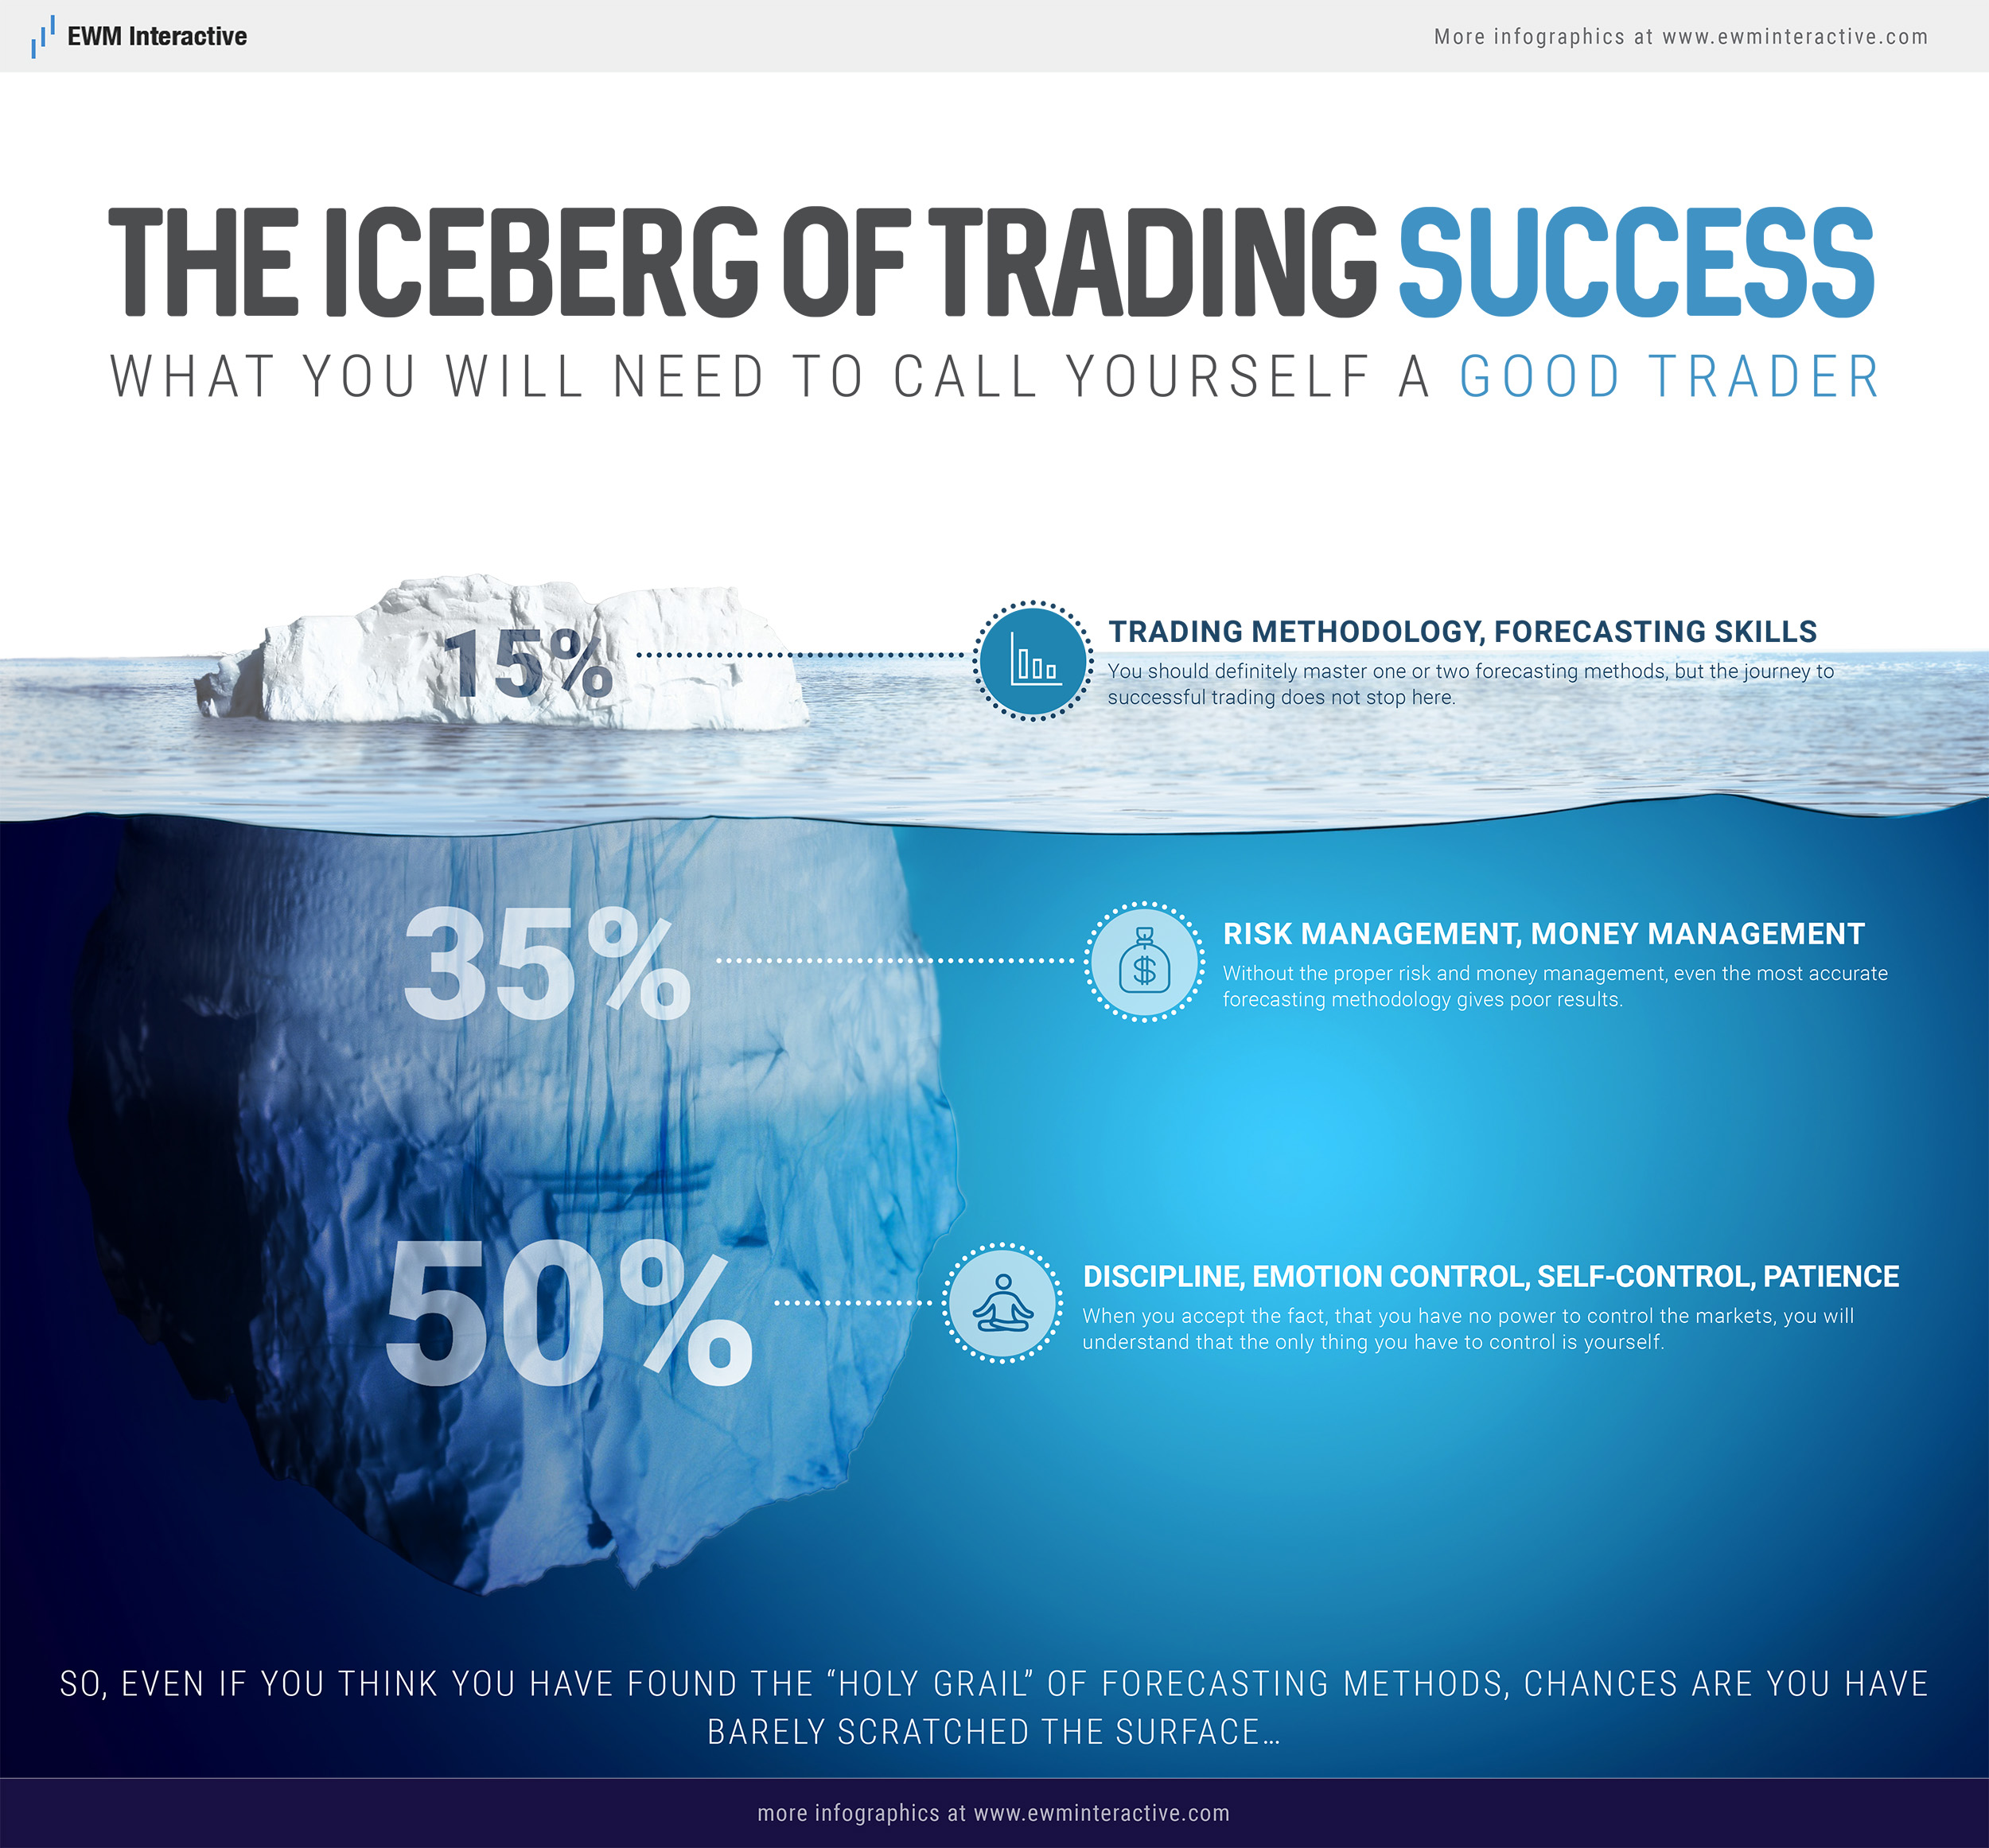 the iceberg of trading success ewm interactive iceberg of trading success